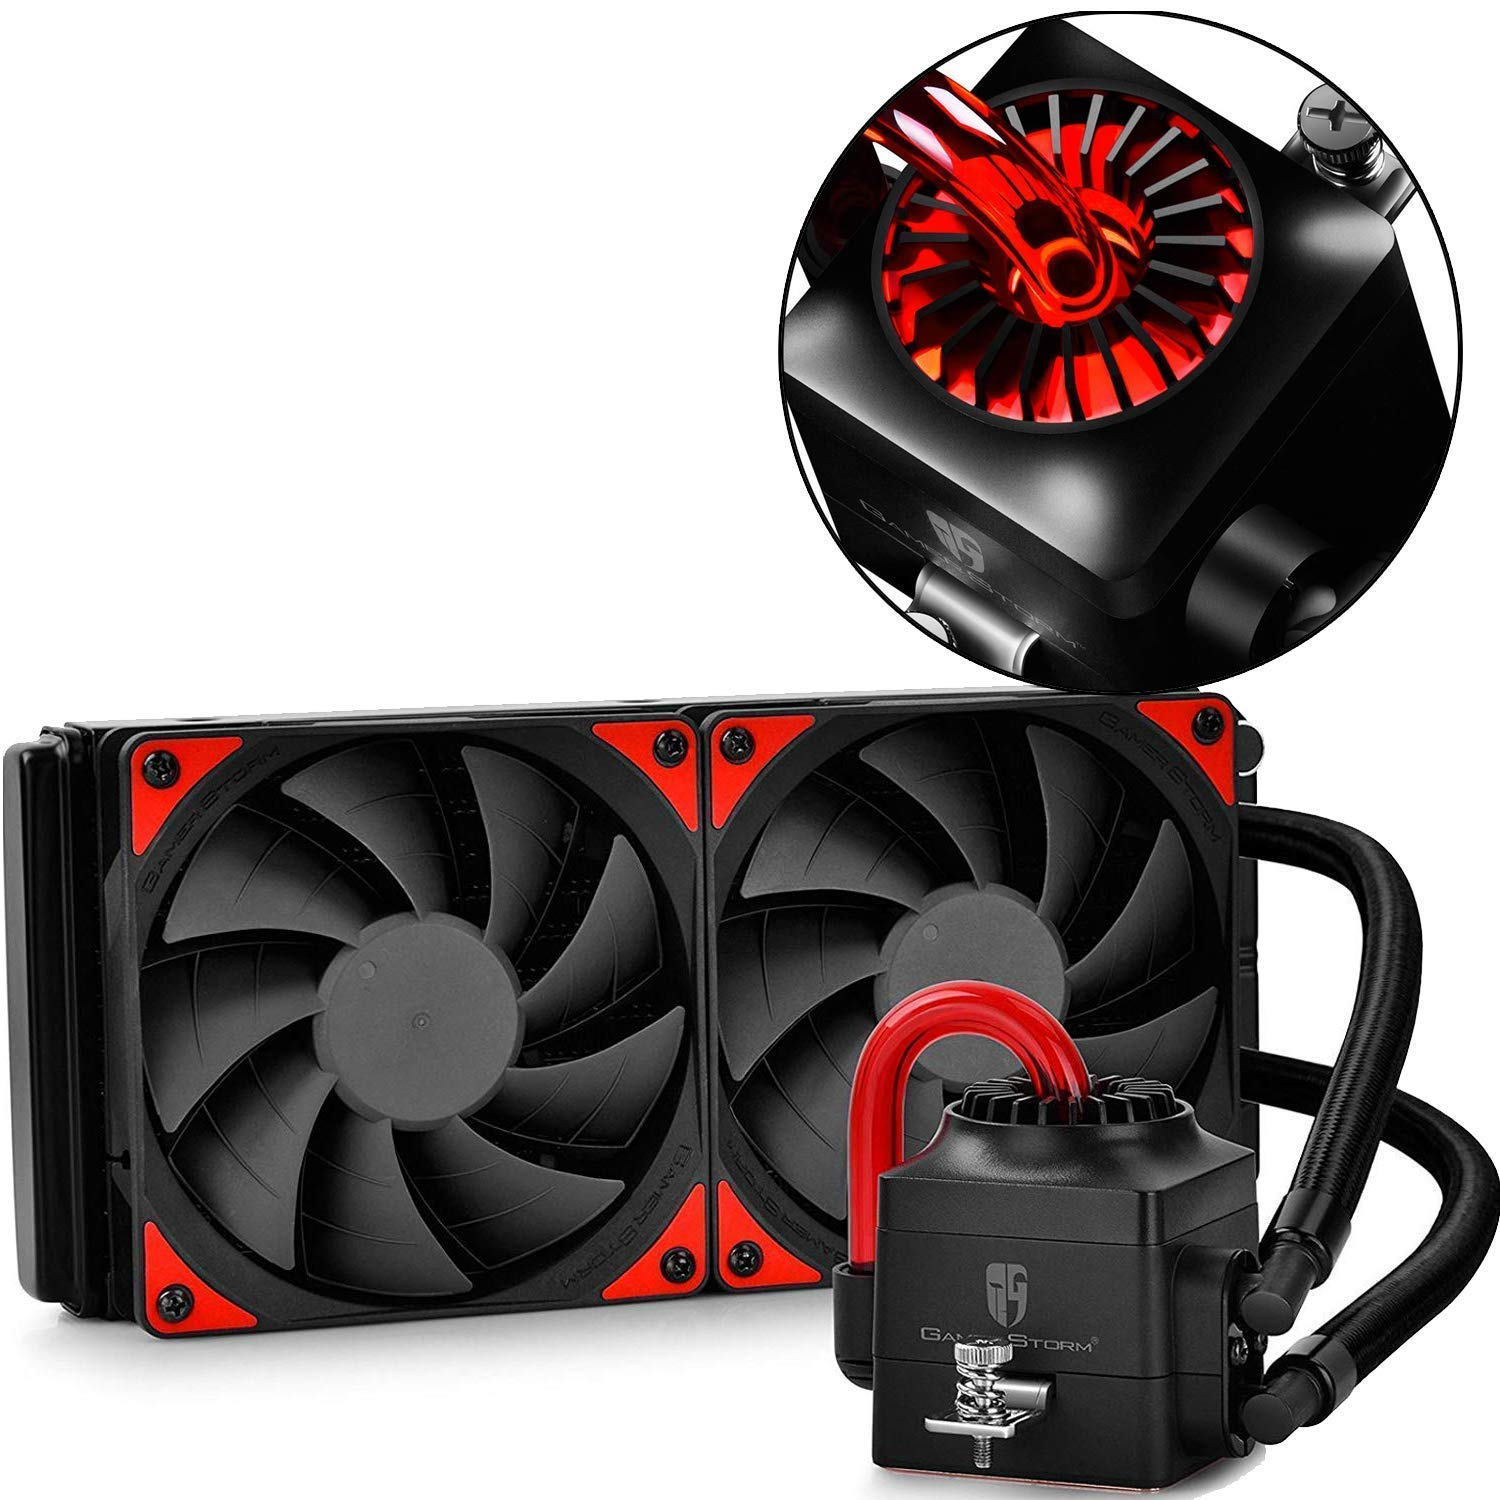 Deepcool Gamer Storm Captain 240ex Cpu Liquid Cooler Aio Water Cooling Ceramic Bearing Pump Visual Liquid Flow With 120mm Pwm Fan Support Lga 2011 V3 And Am4 Compatible Amazon In Computers Accessories